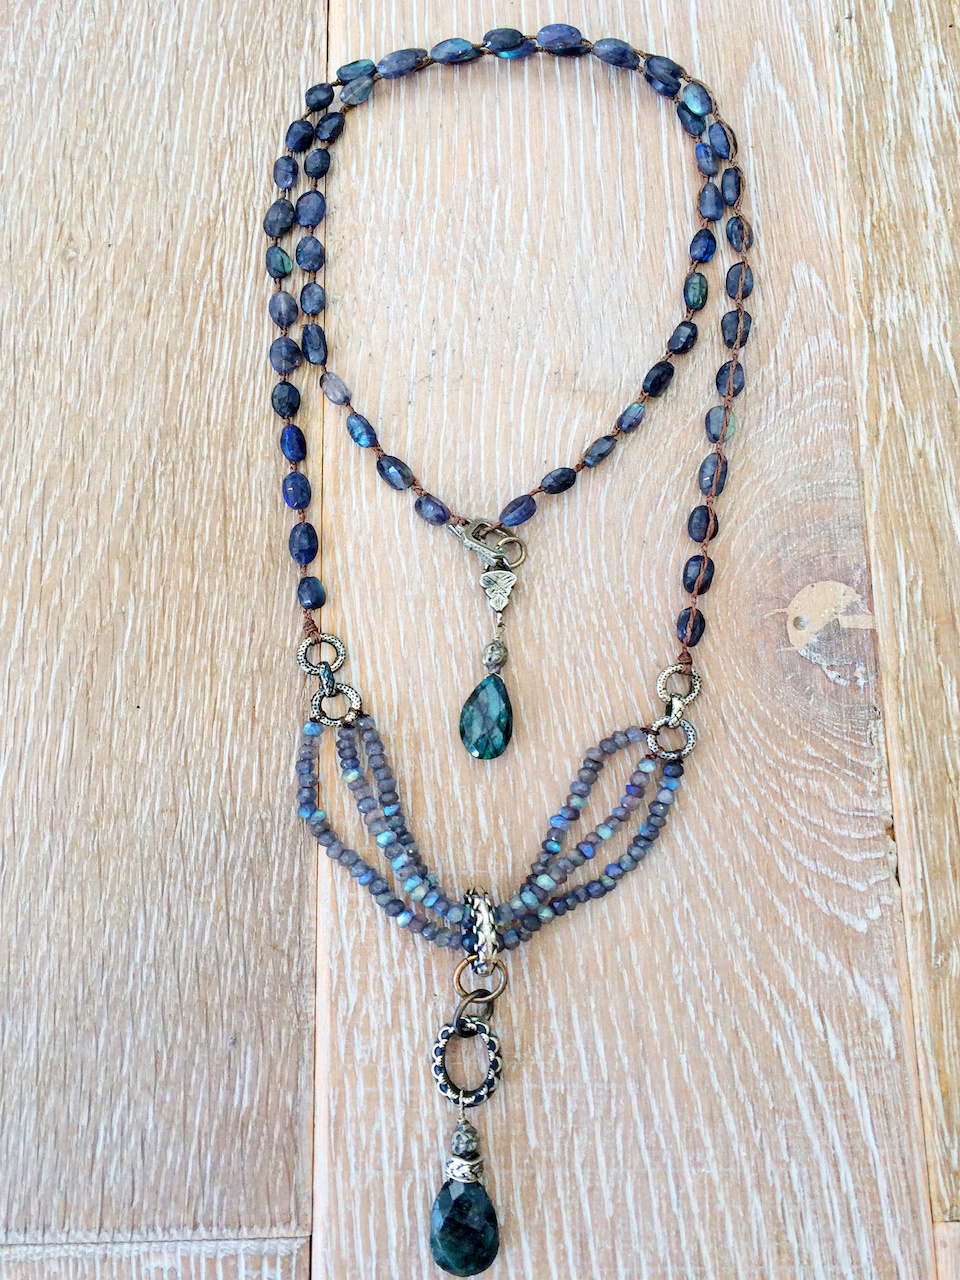 blue gemstone necklace StyleBlueprint Atlanta